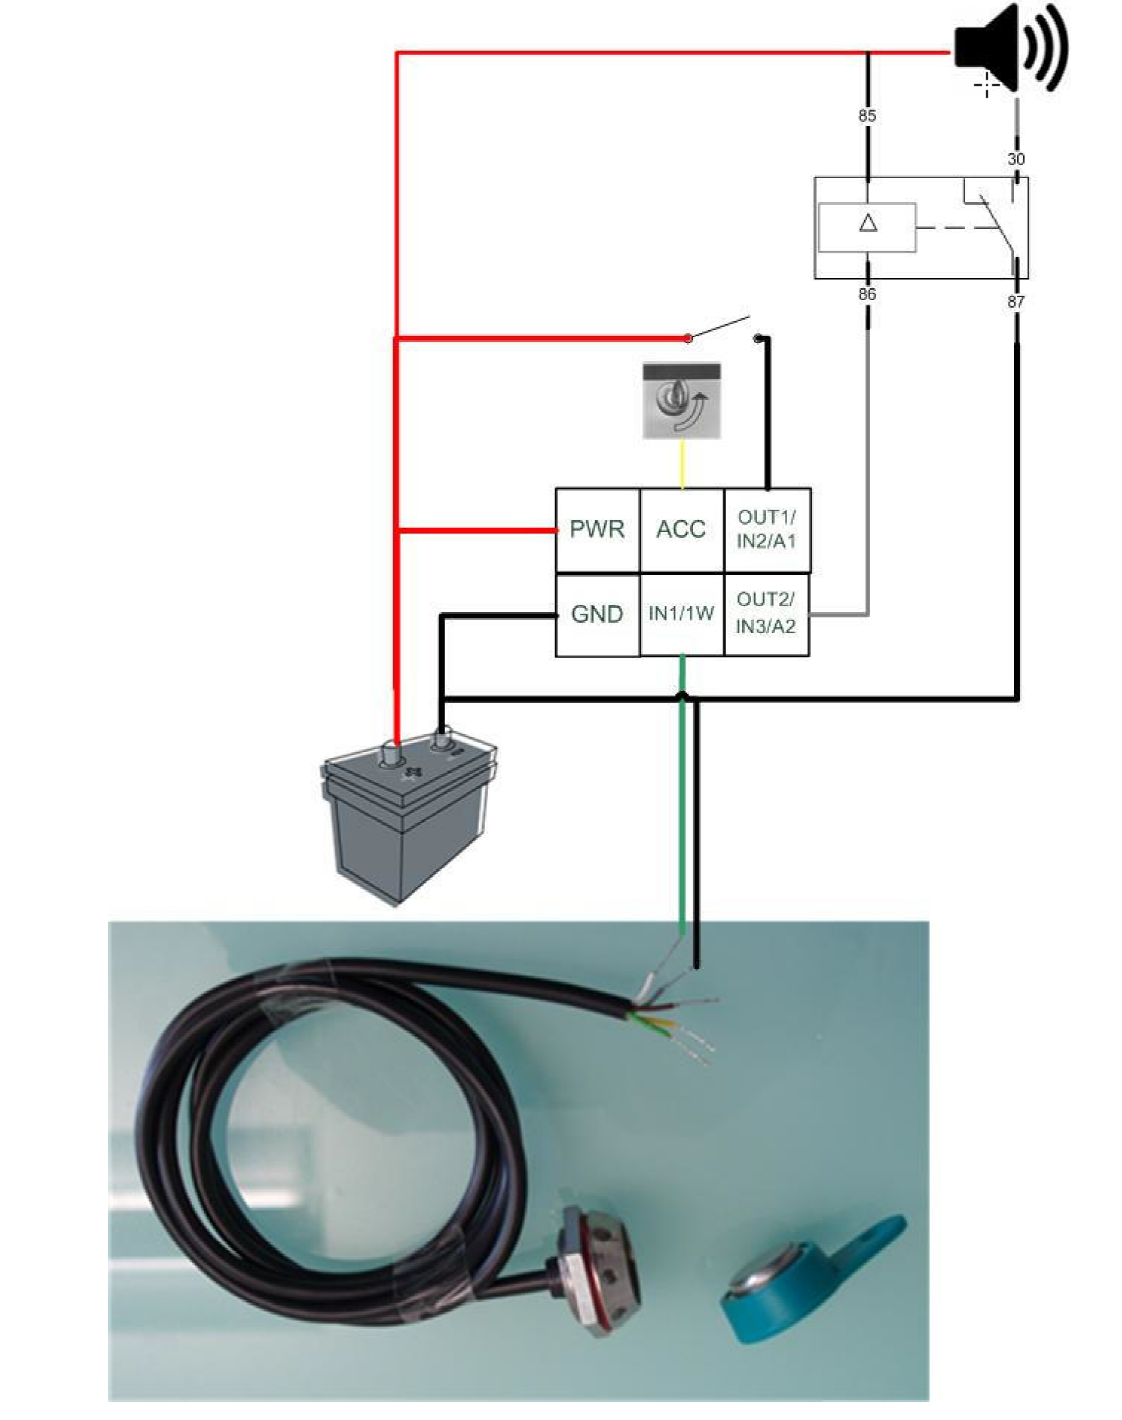 image2015 5 12 14%3A5%3A12?version=1&modificationDate=1431432359069&api=v2 gps dynamic einbauanleitung ak1 Basic Electrical Wiring Diagrams at aneh.co